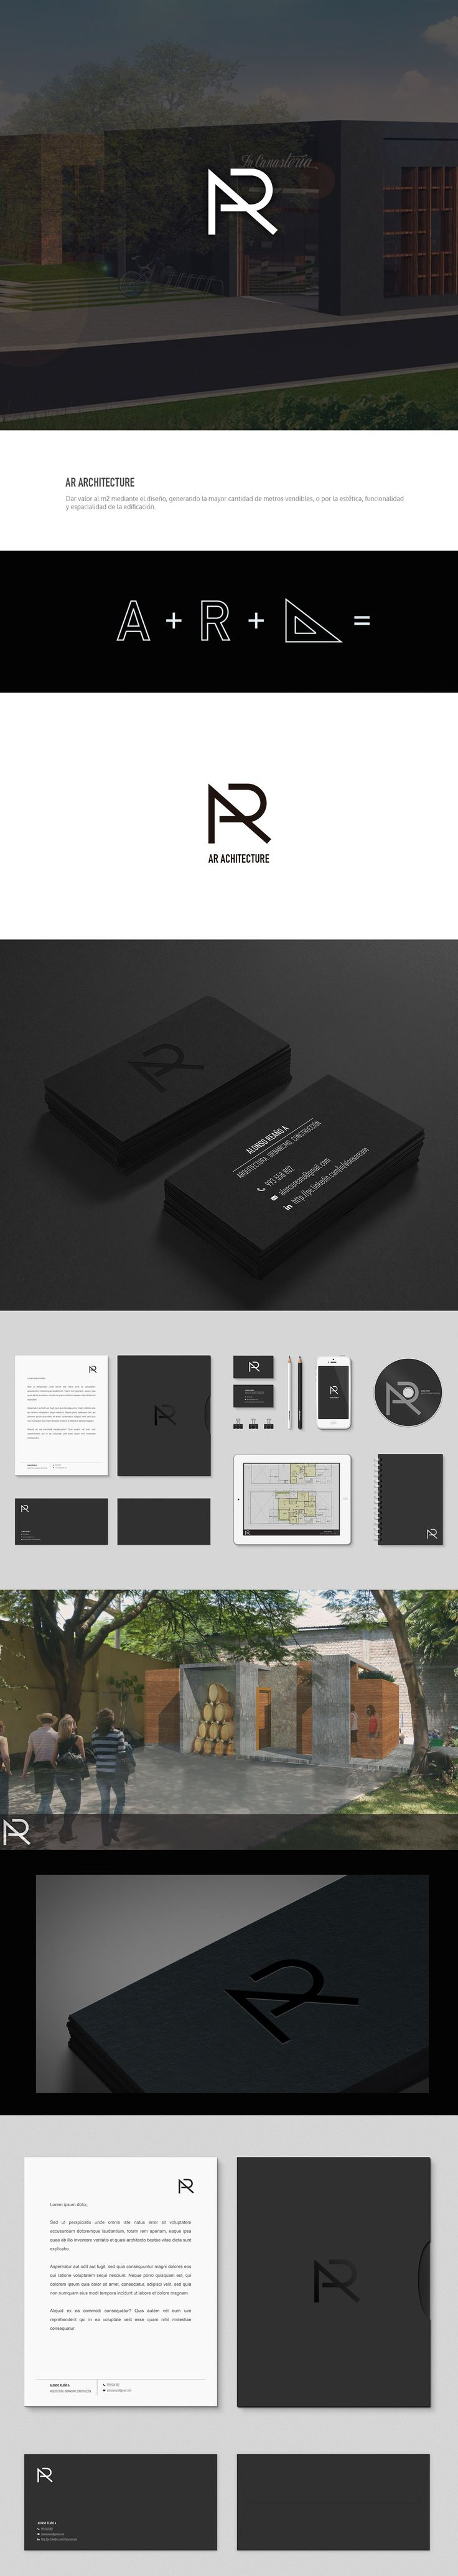 AR Architecture Branding on Behance